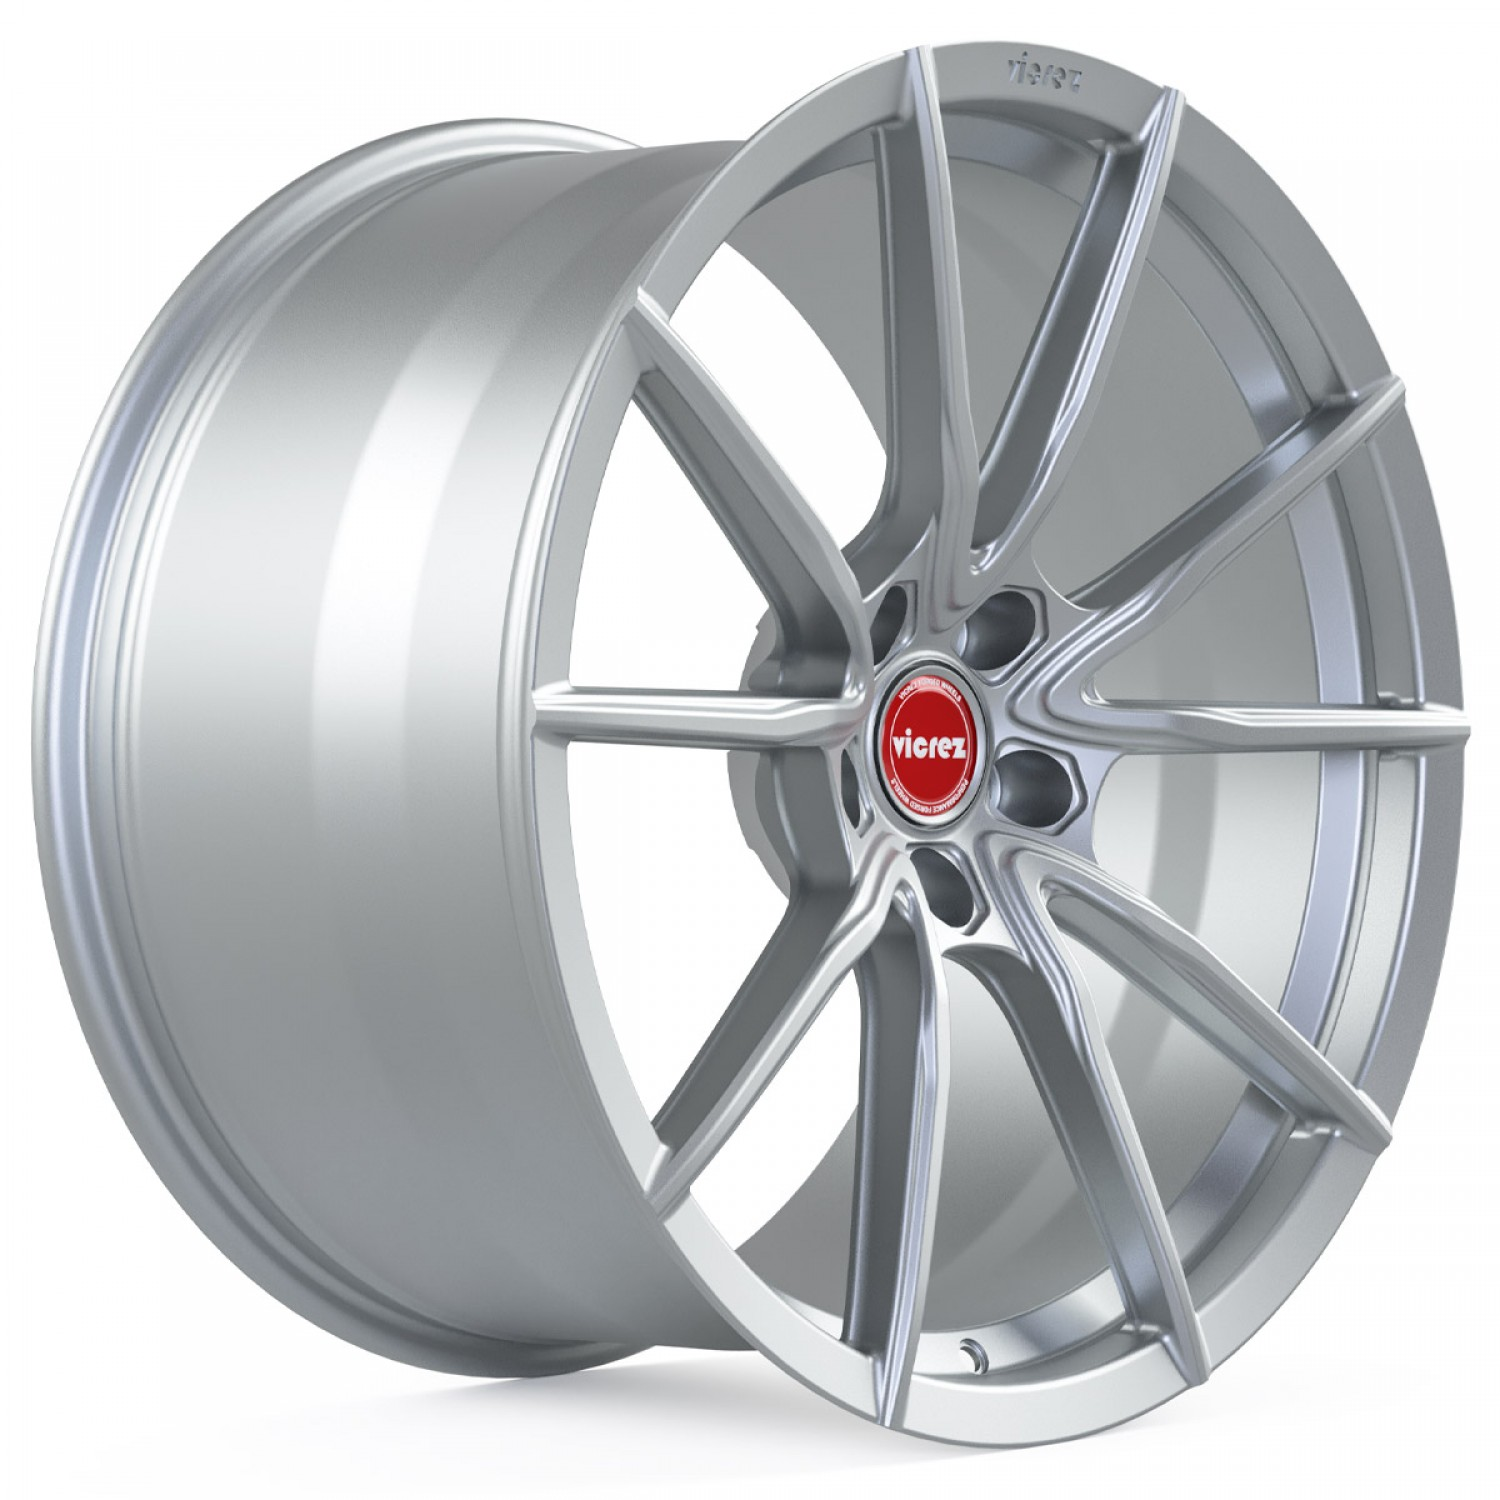 Vicrez VSF 1-Piece Forged Wheel vzw1001